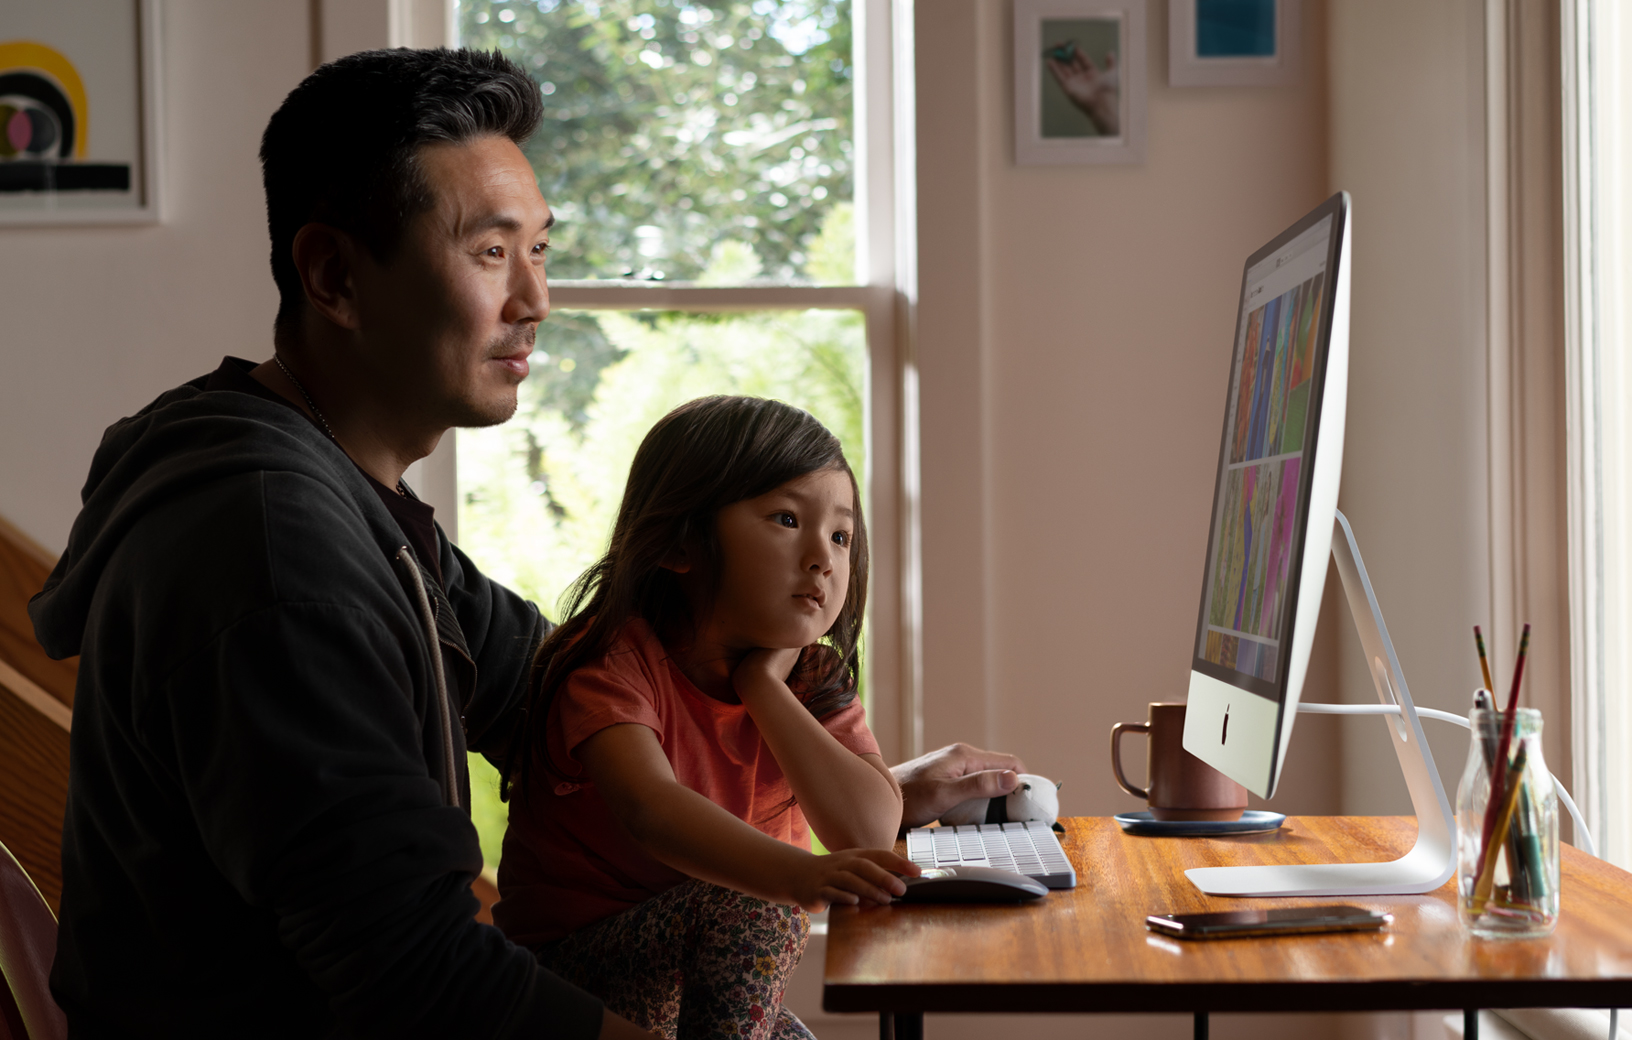 https://www.apple.com/newsroom/images/product/mac/standard/Apple-iMac-gets-2x-more-performance-father-and-child-on-iMac-03192019_big.jpg.large_2x.jpg